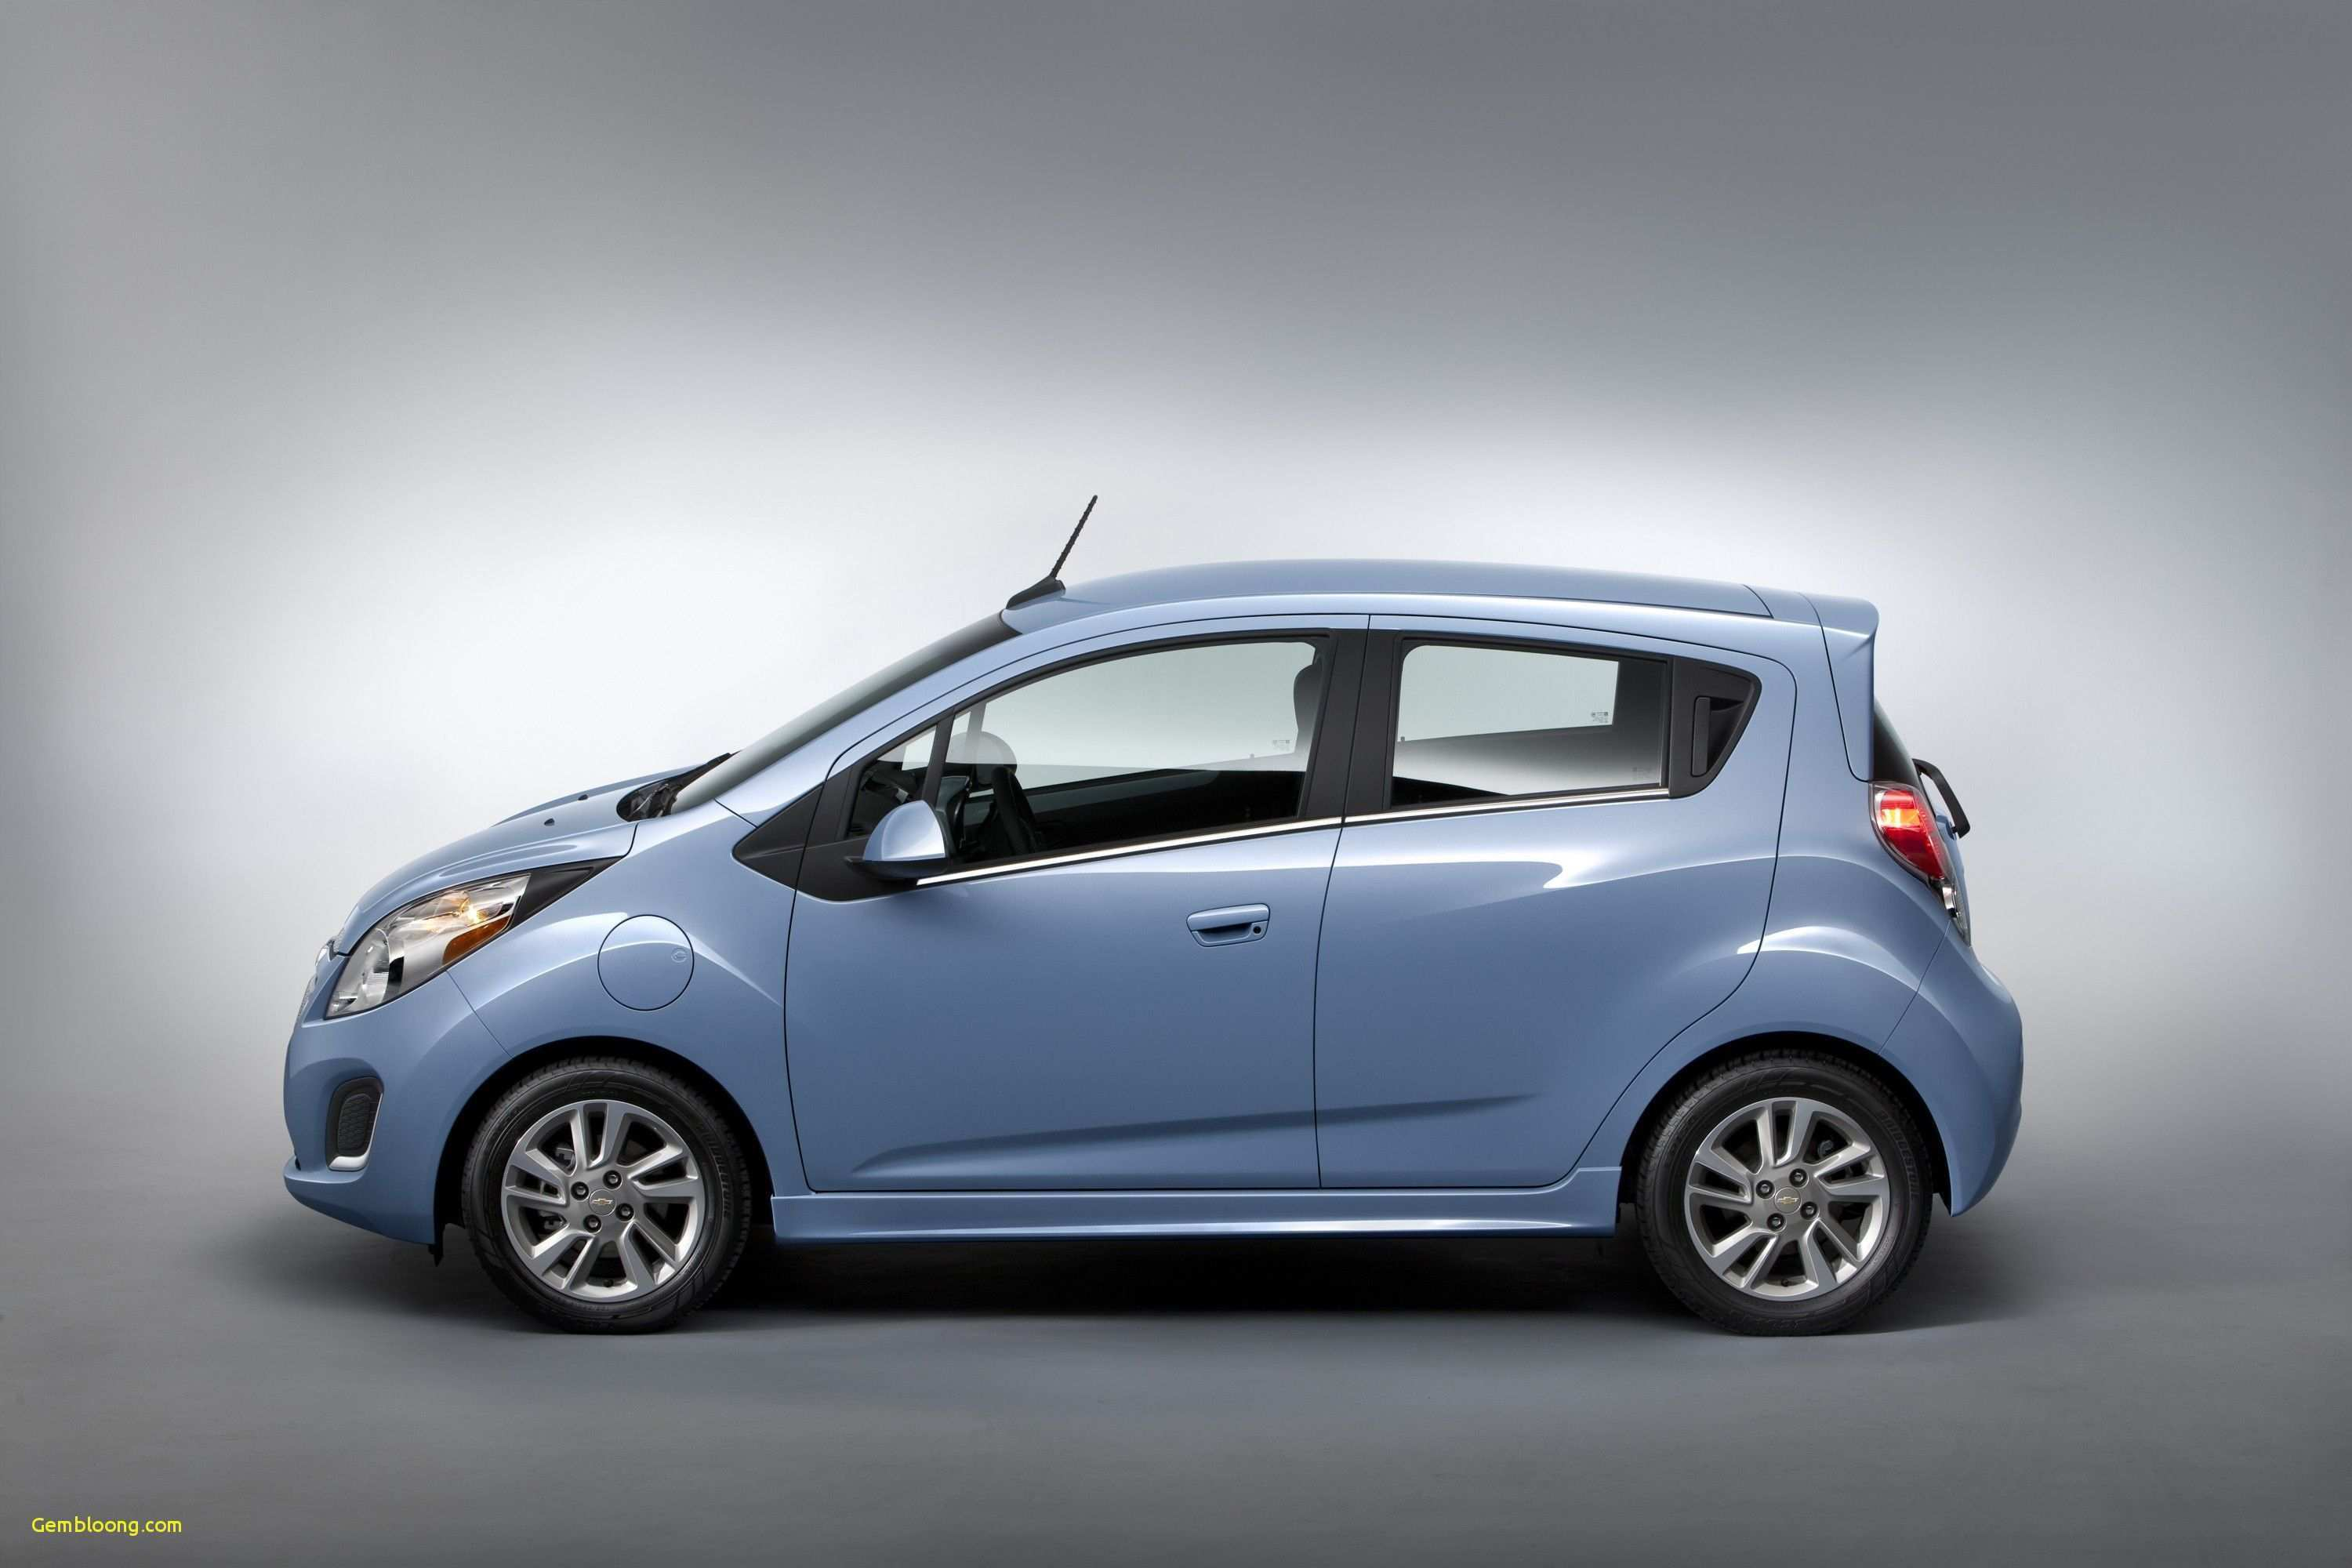 32 All New 2020 Chevrolet Spark Specs And Review